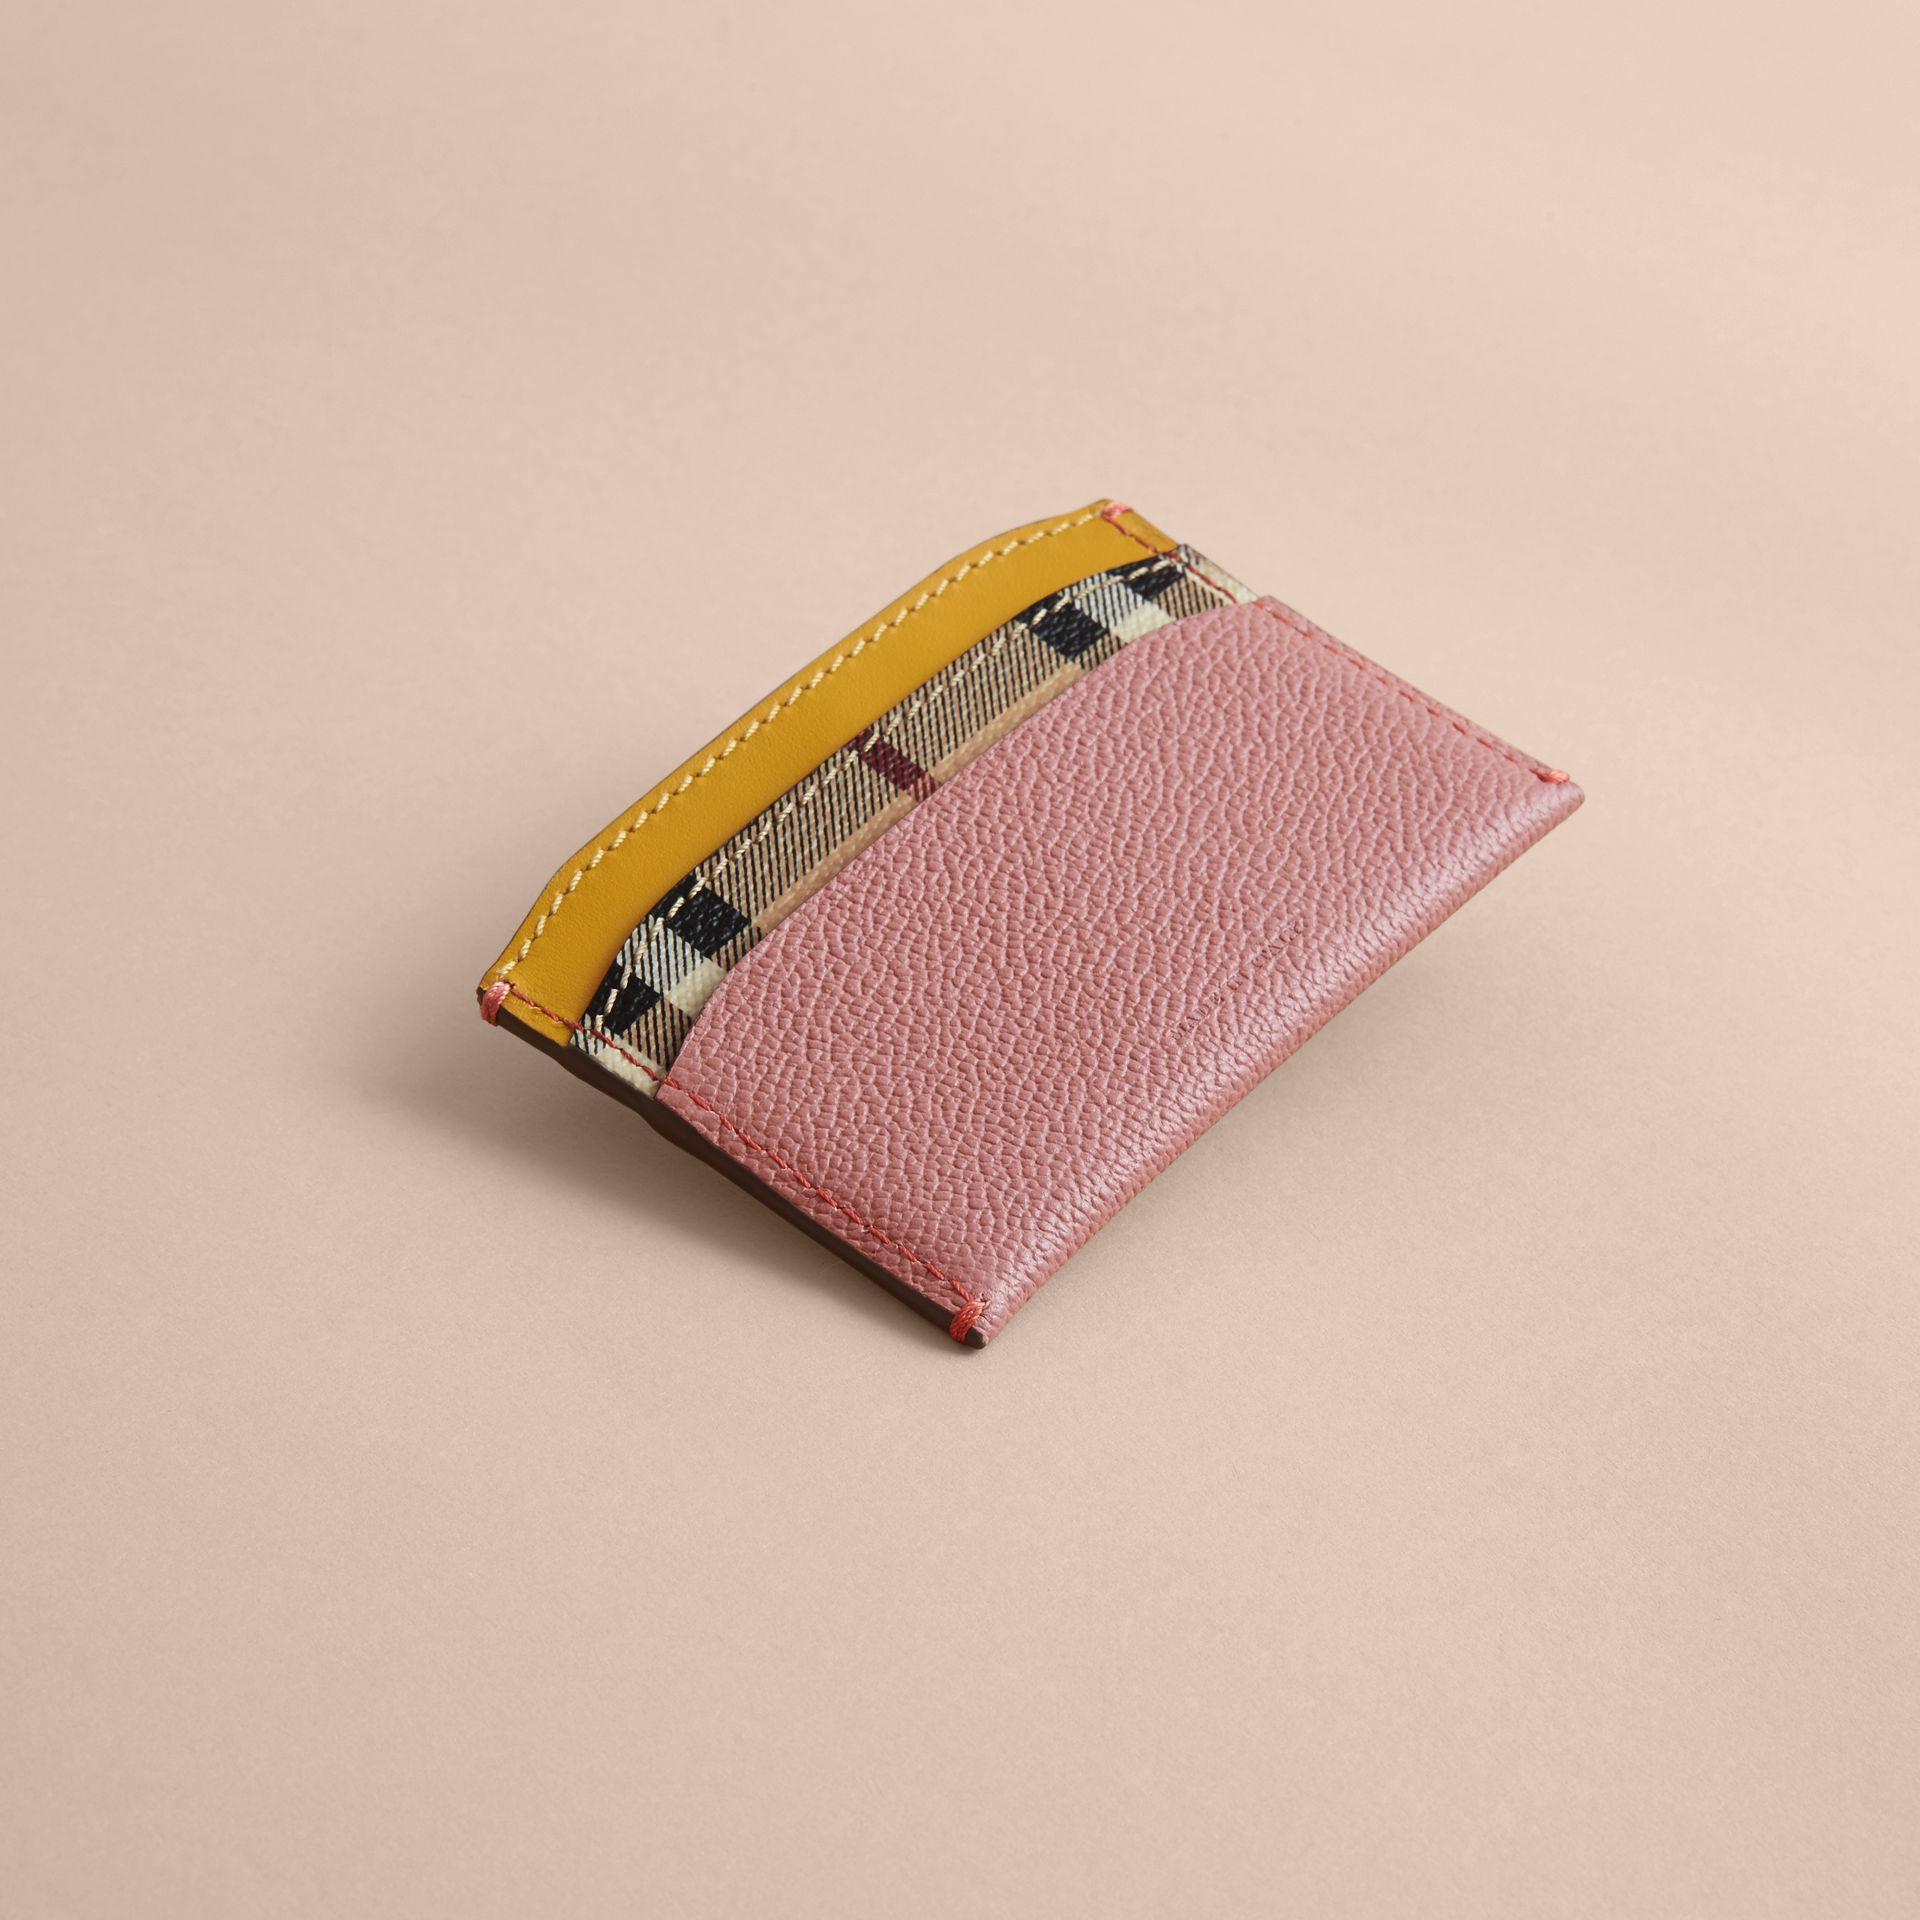 Colour Block Leather and Haymarket Check Card Case in Dusty Pink / Multi - Women | Burberry Hong Kong - gallery image 3